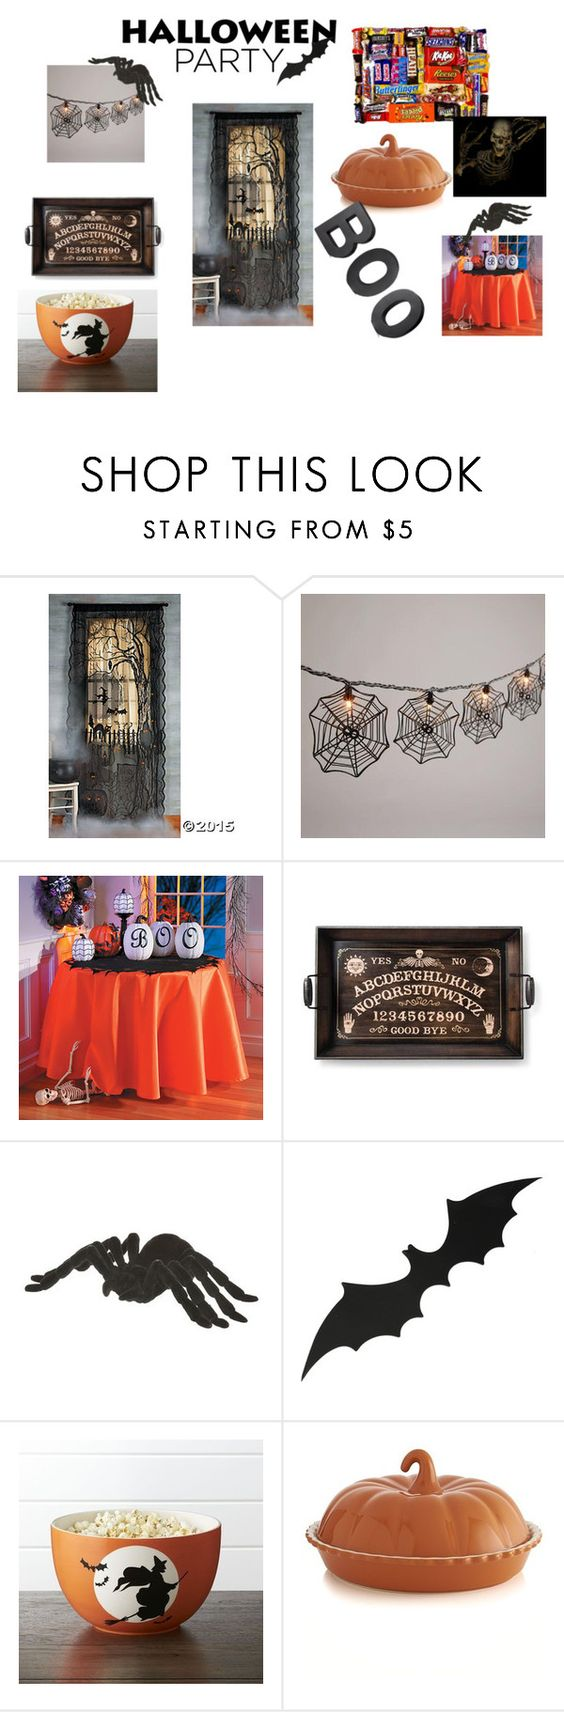 """""""halloween party decor"""" by katt-dallas06 ❤ liked on Polyvore featuring interior, interiors, interior design, home, home decor, interior decorating, Cost Plus World Market, Improvements, Crate and Barrel and Halloweenparty"""